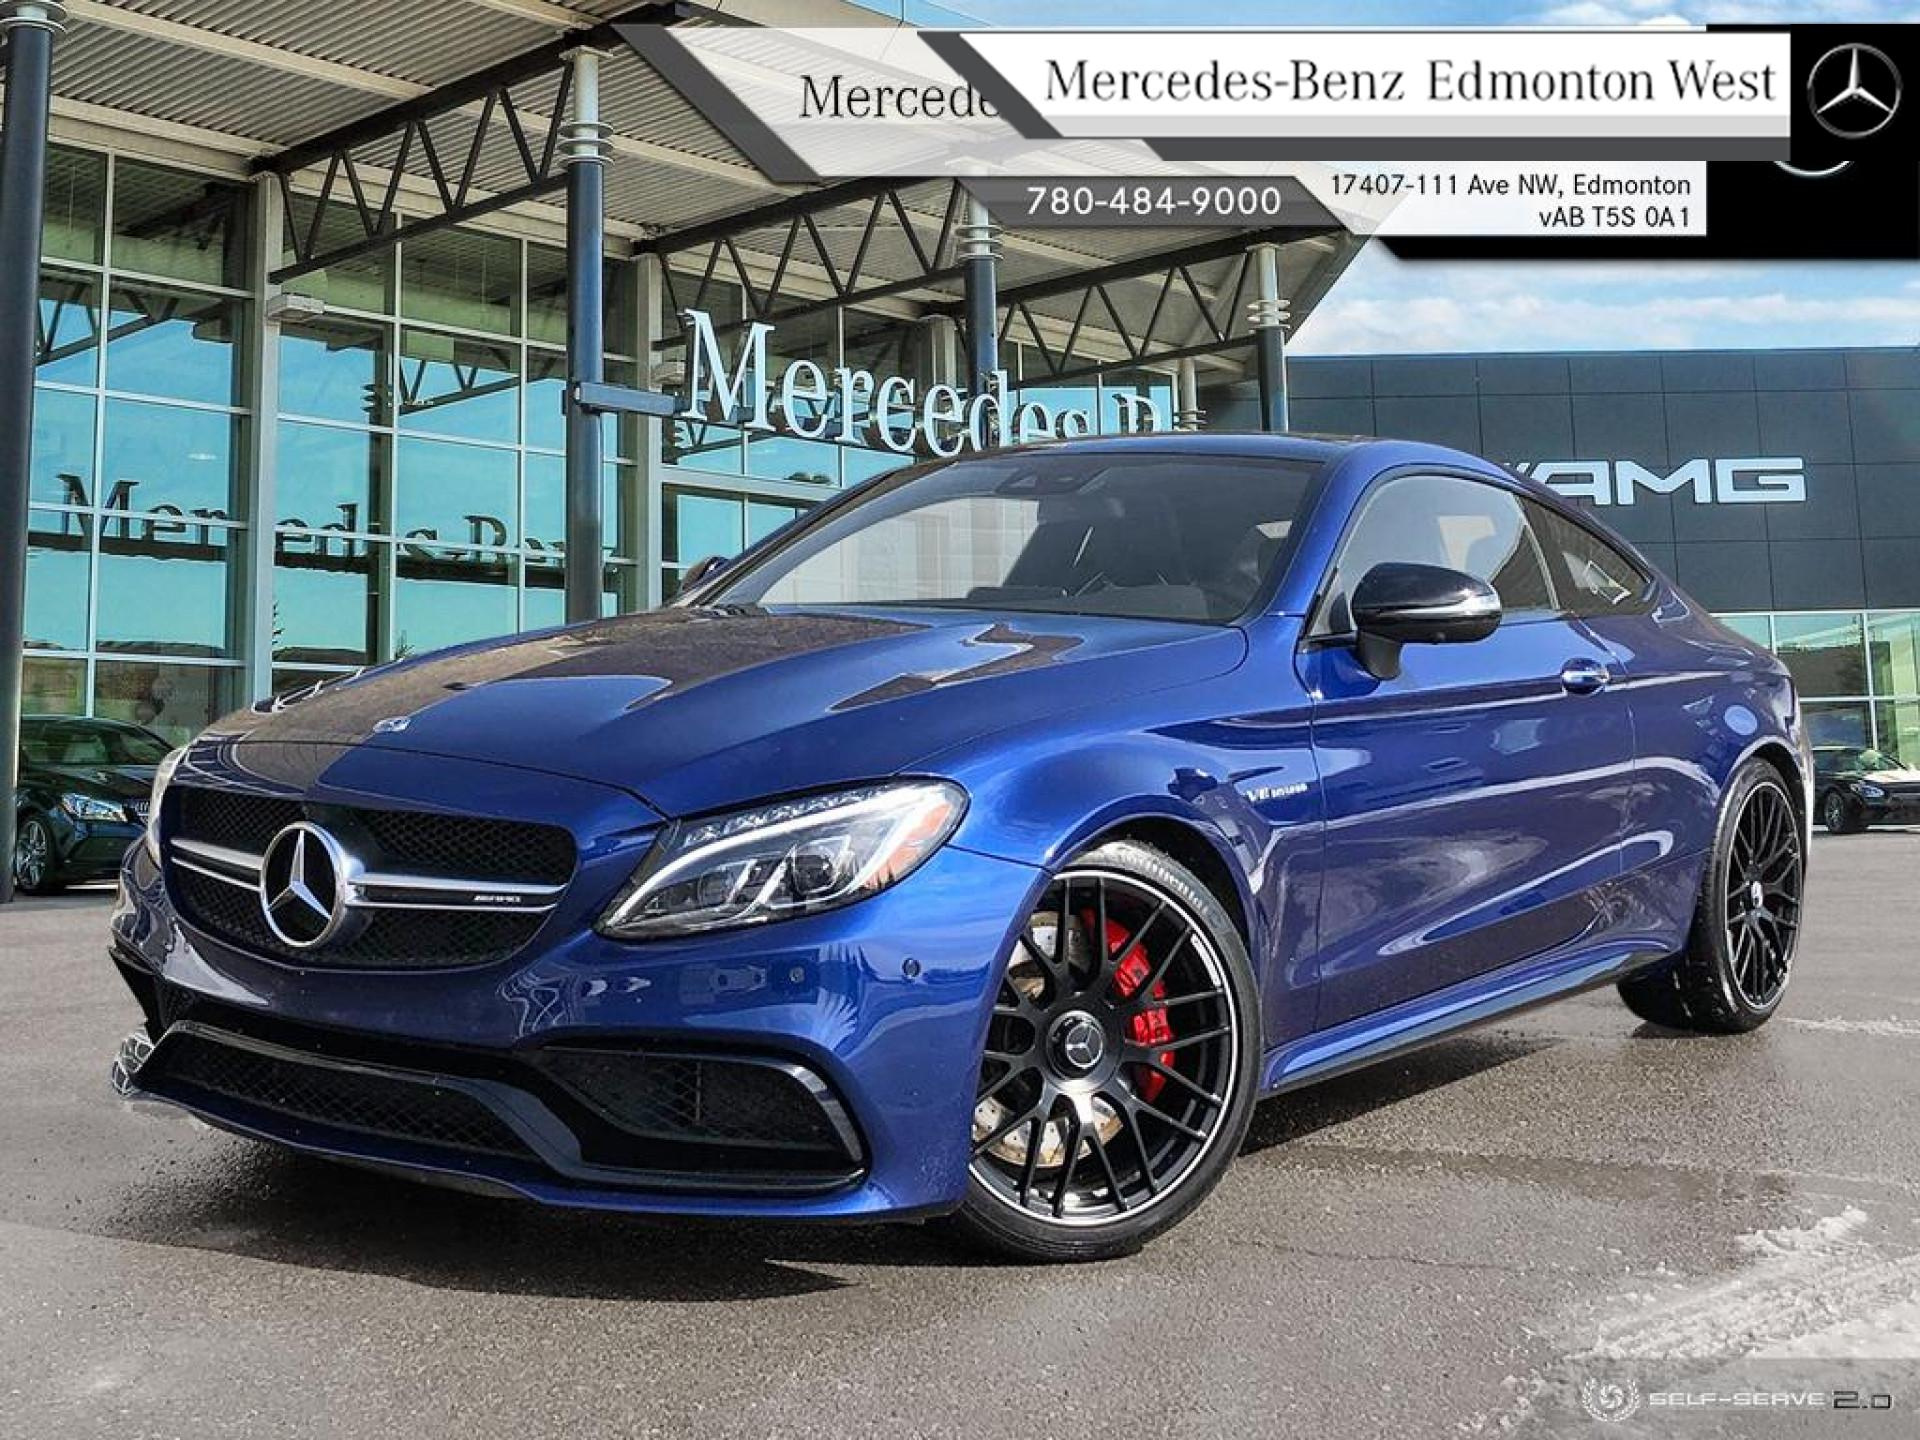 Certified Pre-Owned 2017 Mercedes Benz C-Class C63S AMG Coupe Star Certified Extended Warranty, No Accident Records, One Owner